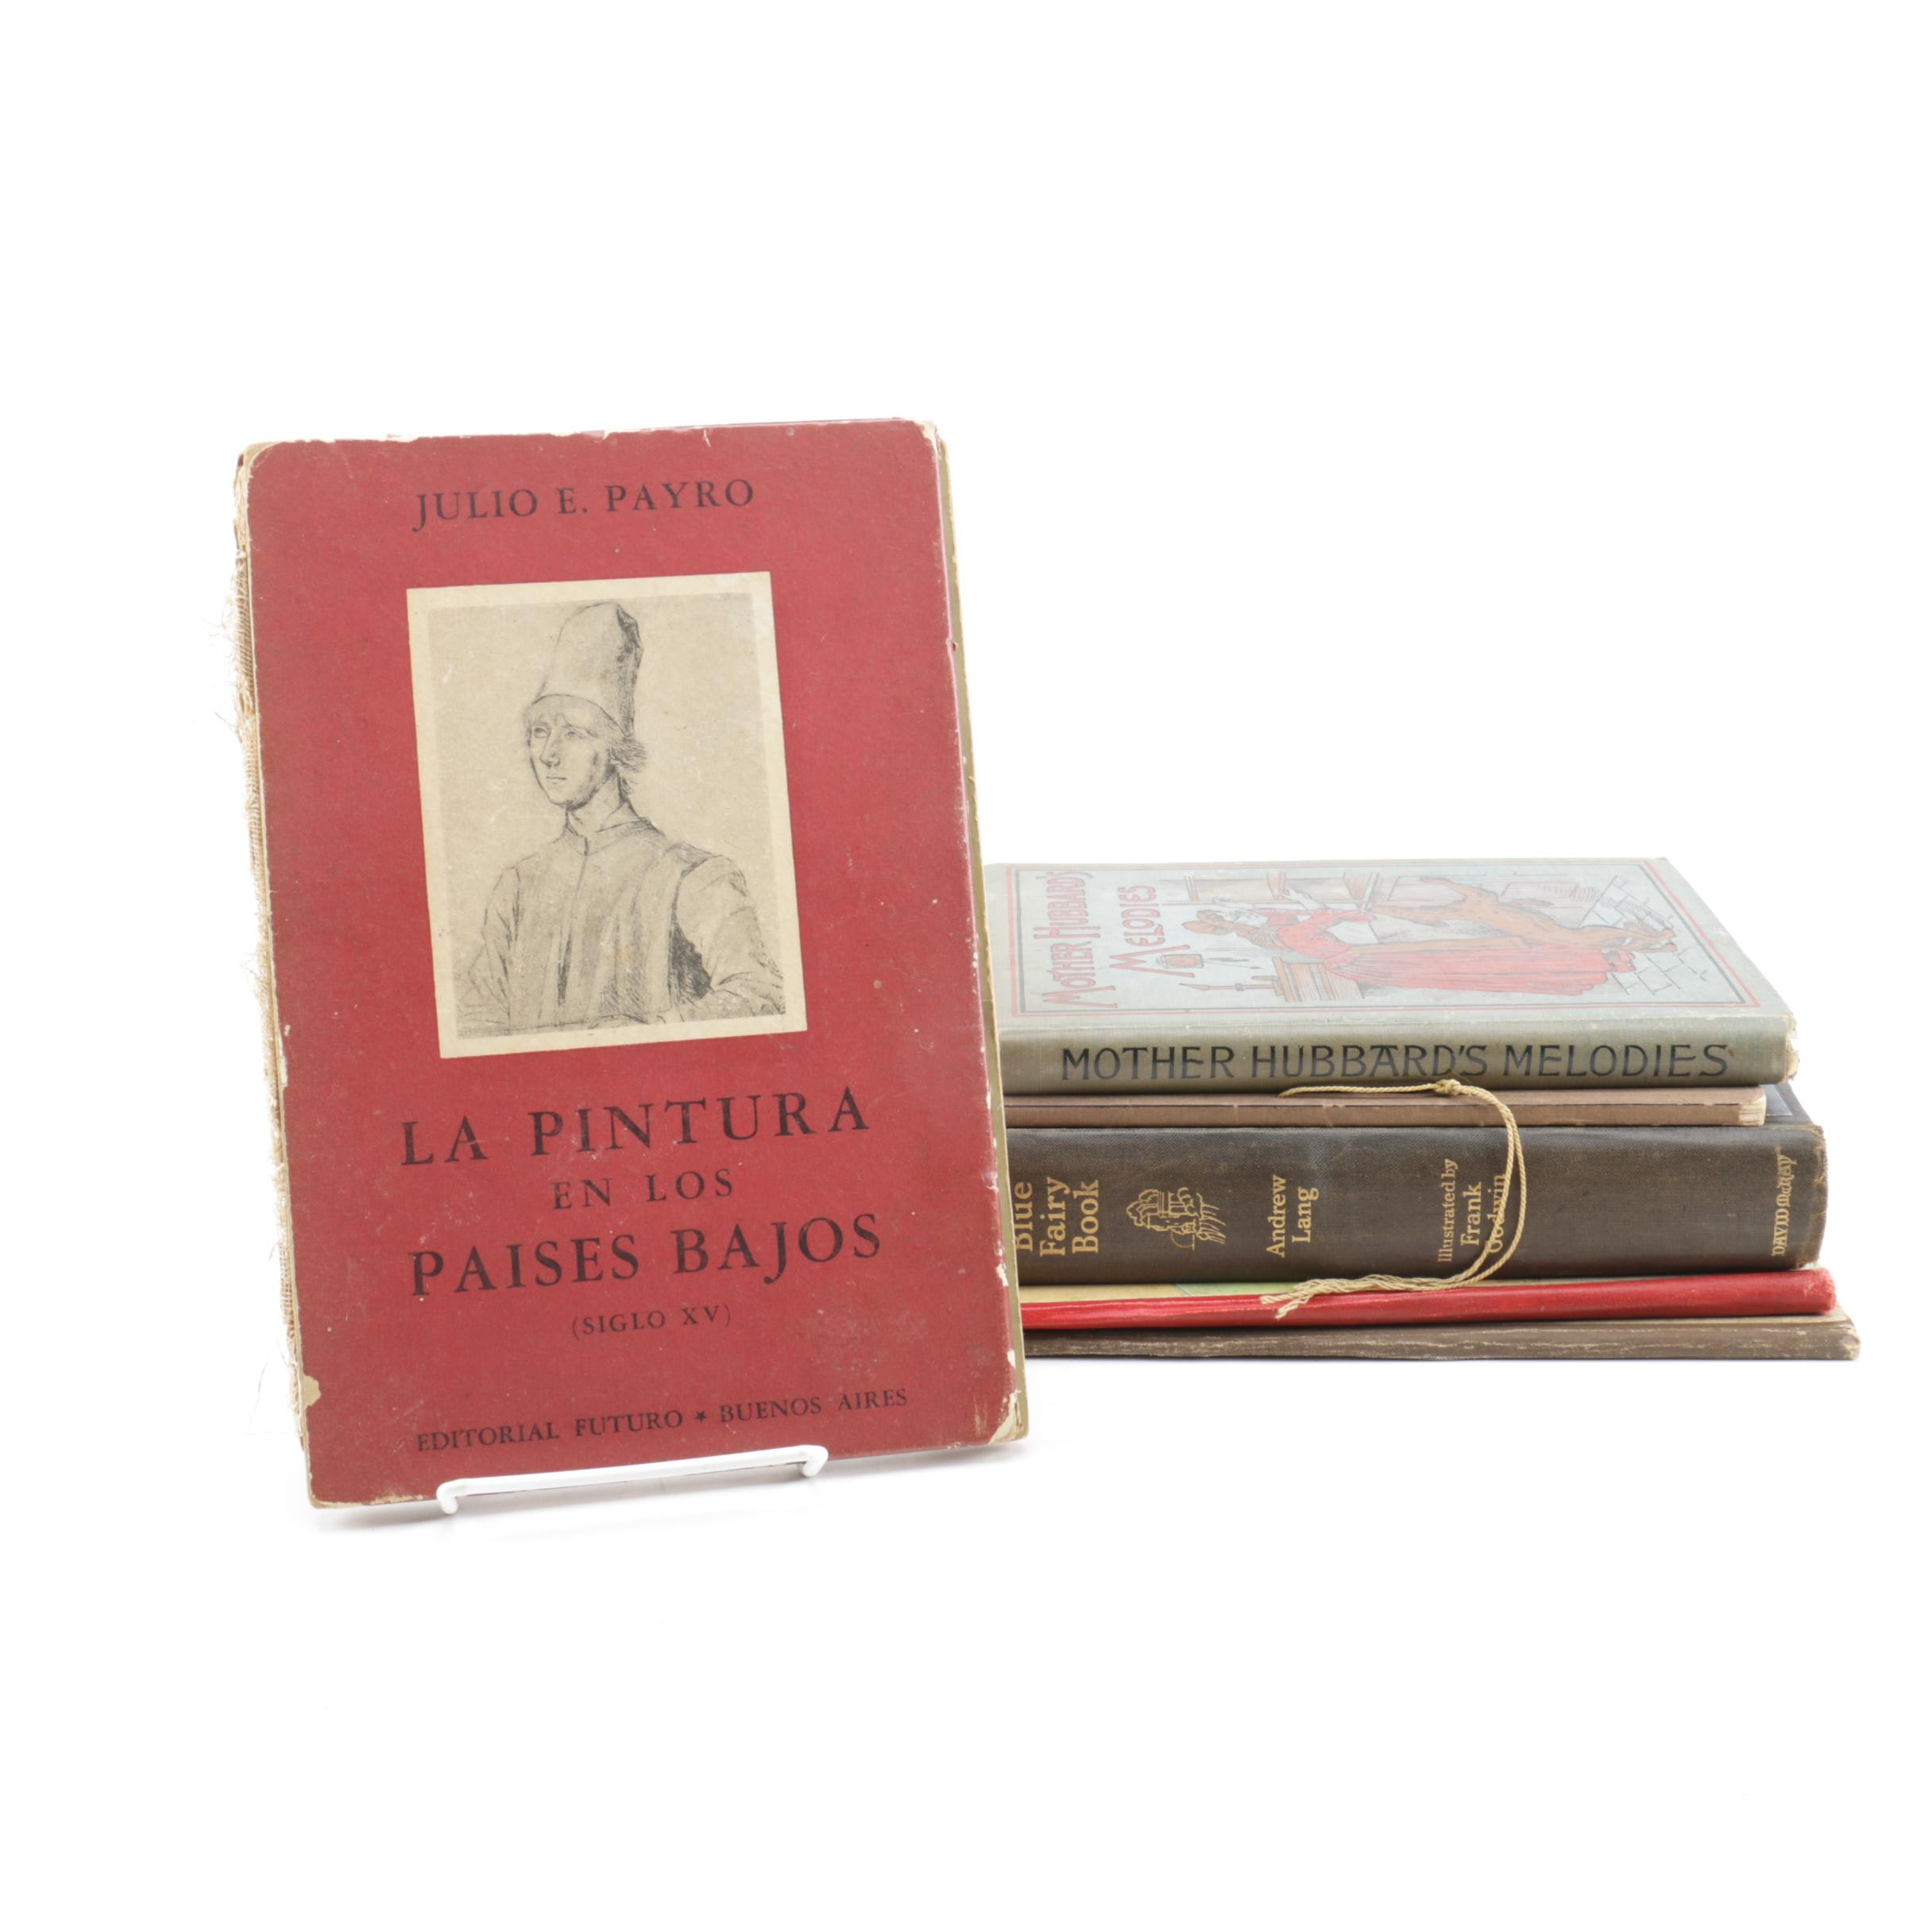 Vintage and Antique Books Including Children's Books